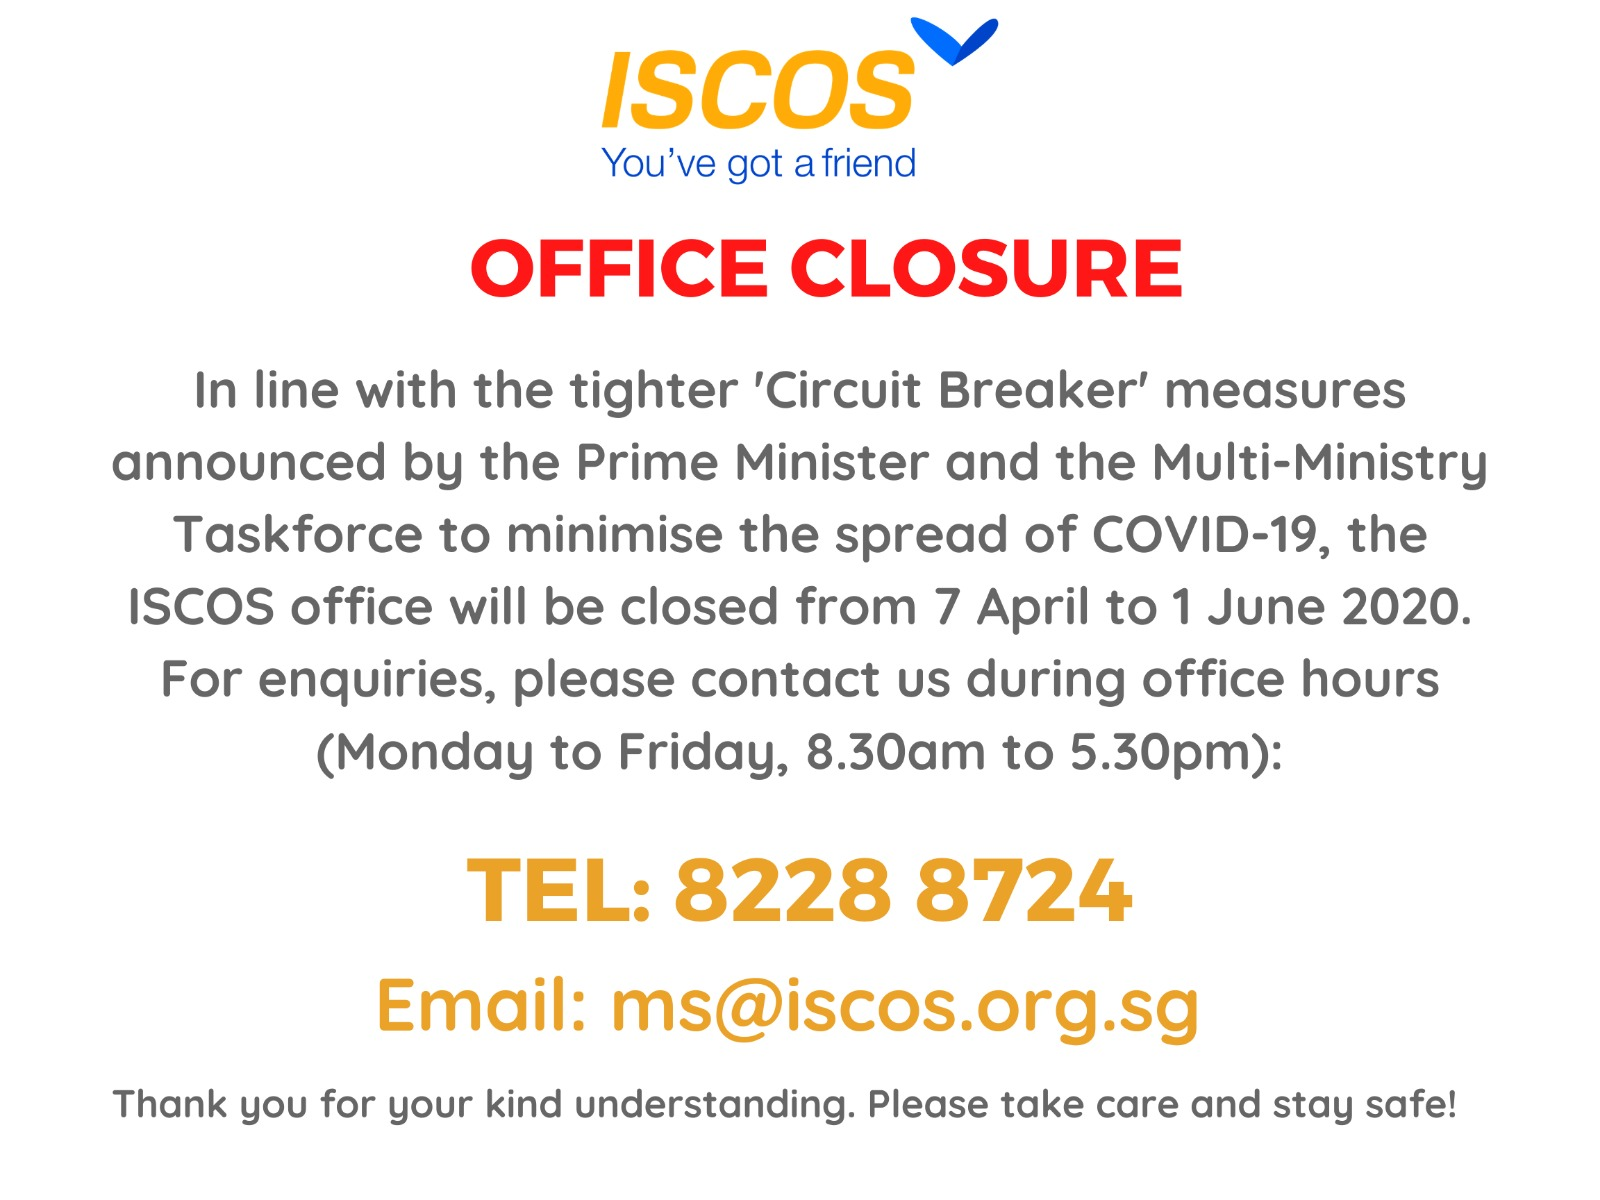 ISCOS office closure